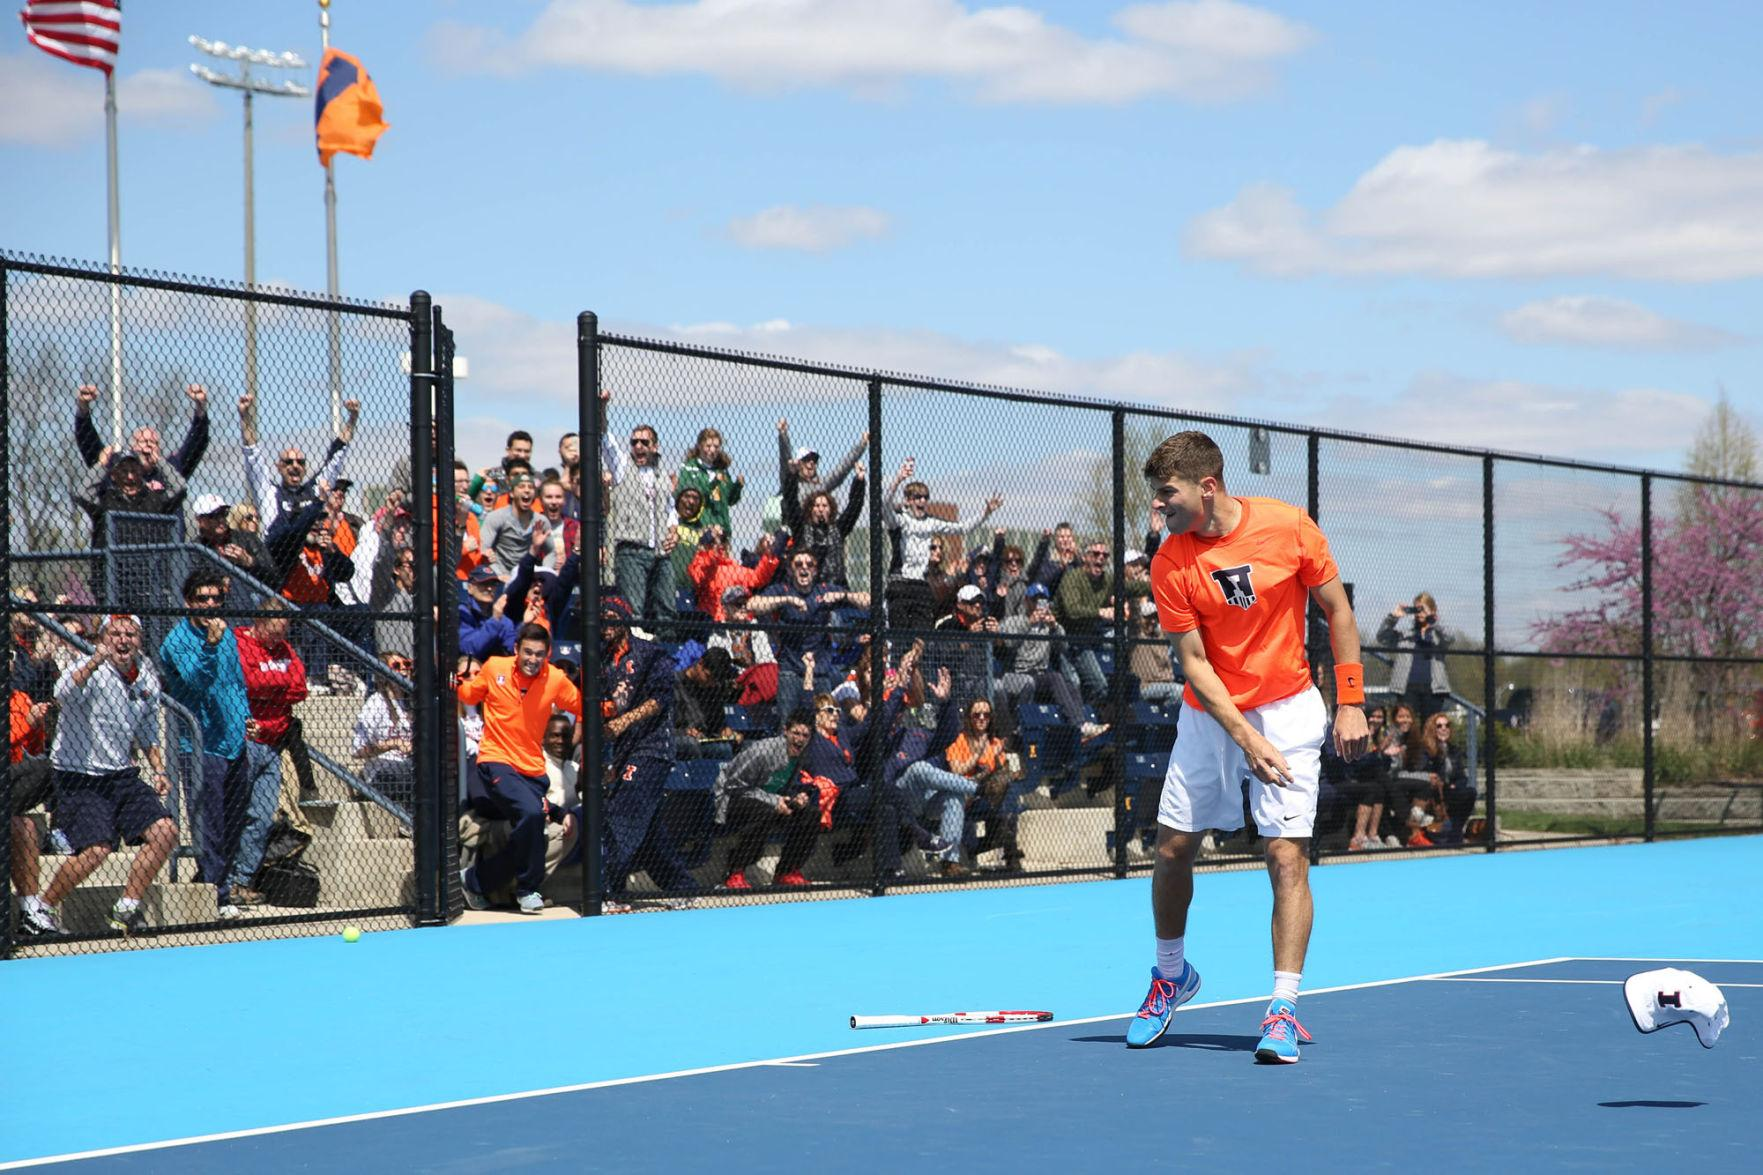 Illini+men%E2%80%99s+tennis+finished+its+sweep+of+the+Buckeyes+in+front+of+the+home+crowd+for+its+first+Big+Ten+Tournament+title+since+2012.